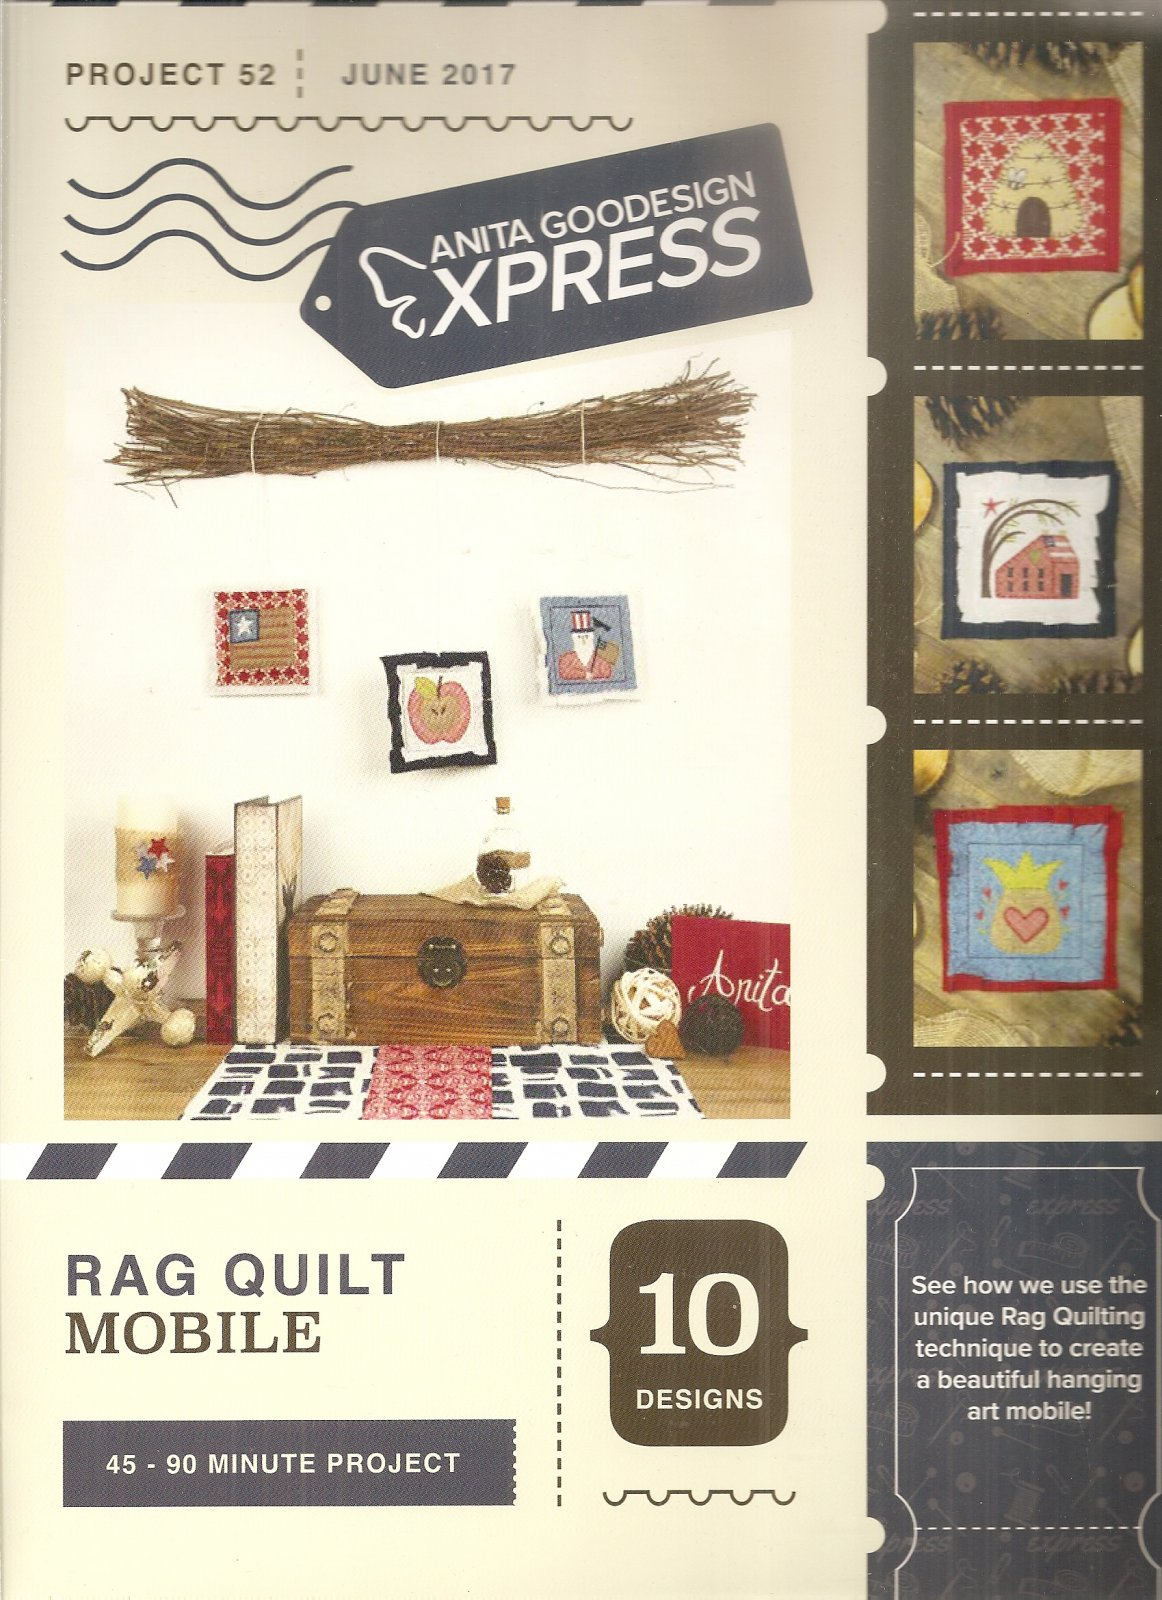 Anita Goodesign Projects Rag Quilt Mobile